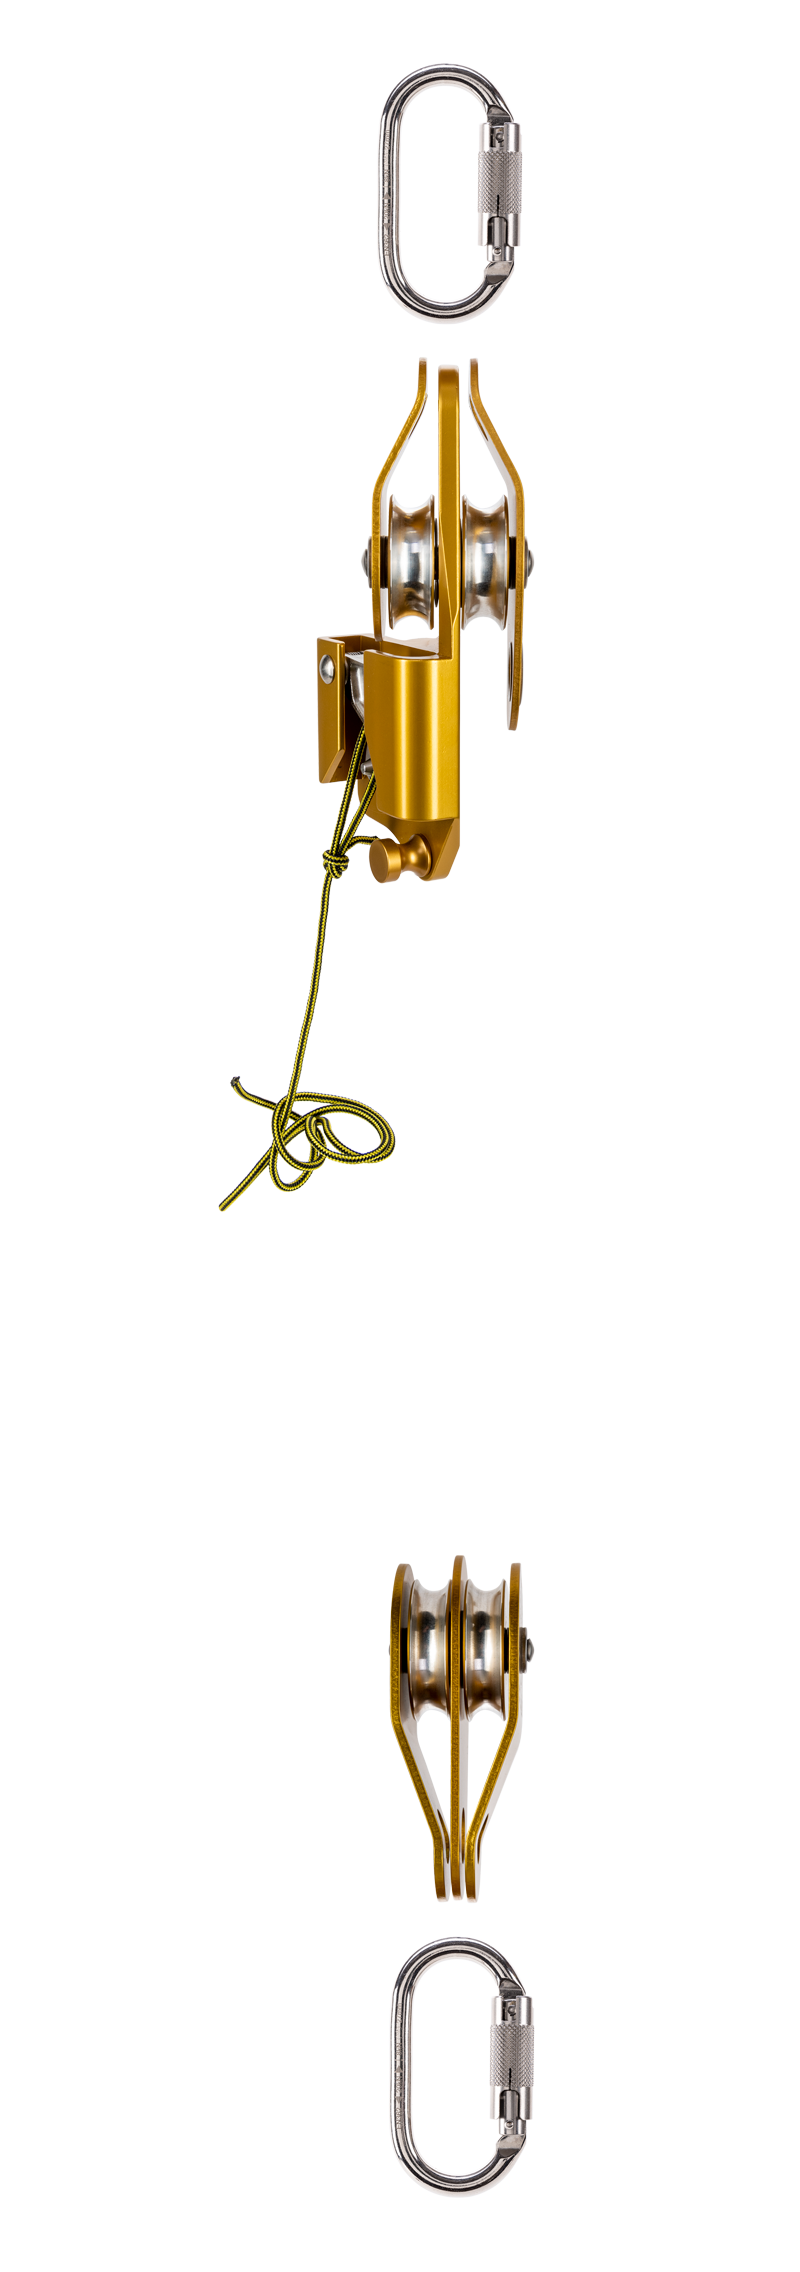 BTECH Rescue Device With Rope & Components